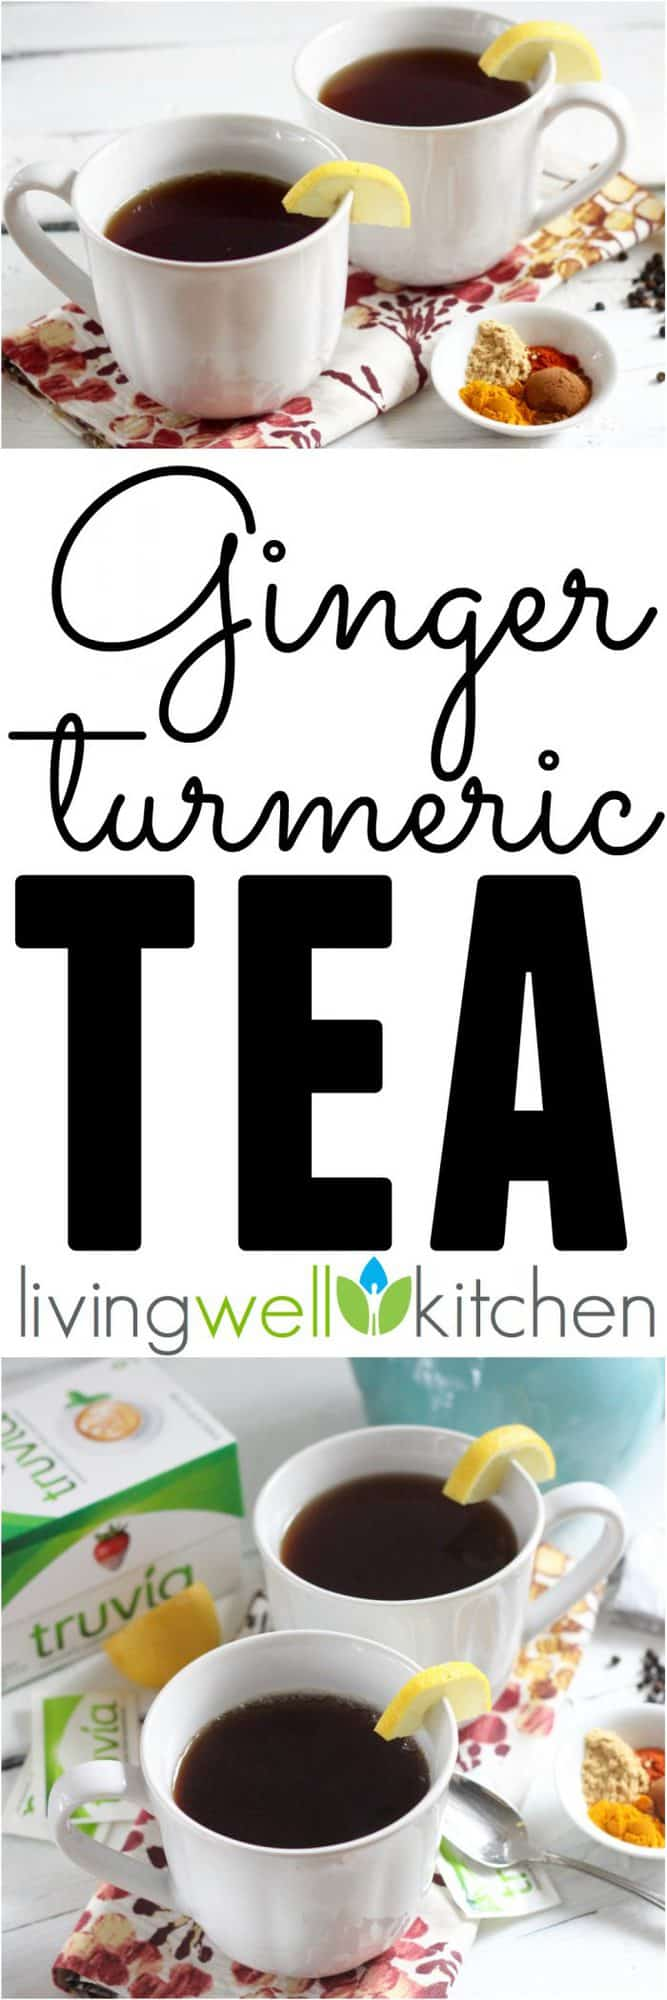 ad: This comforting Ginger Turmeric Tea from @memeinge is full of immune boosting spices with a deliciously spicy & sweet flavor thanks to cayenne & black pepper and Truvia®. This tasty hot beverage recipe is for everyone: gluten-free, vegetarian/vegan, dairy-free